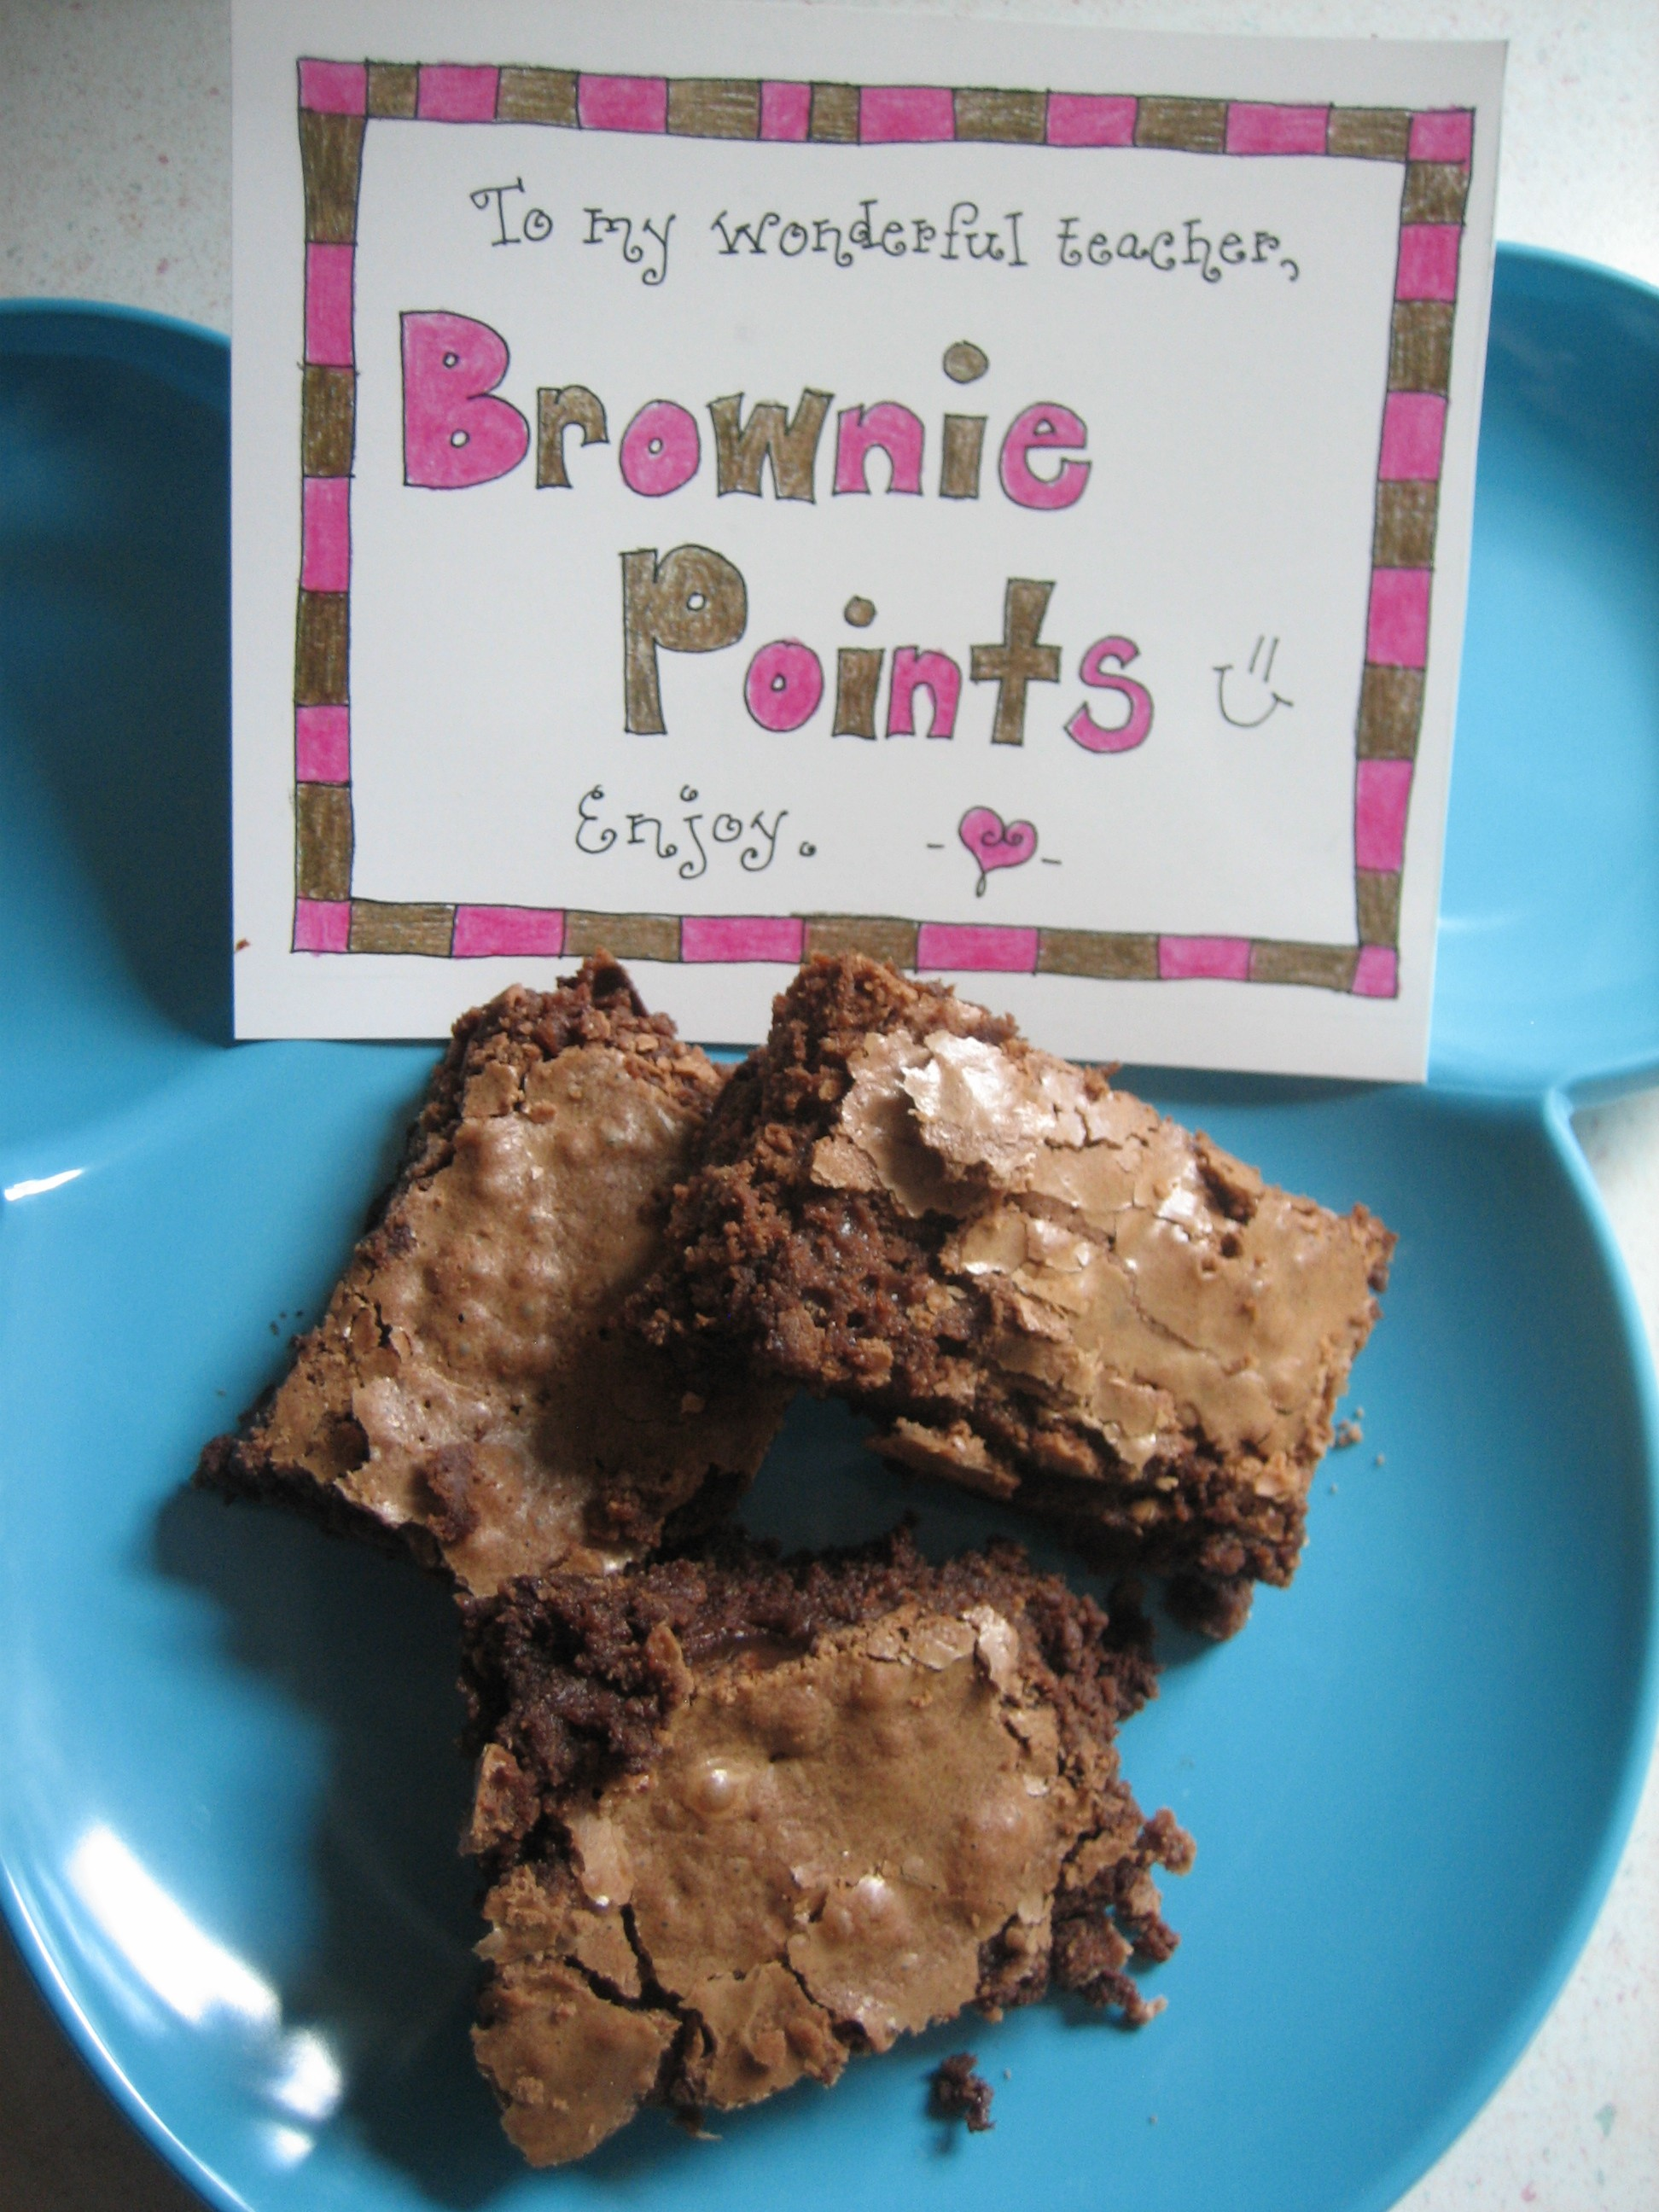 Born On The 4th Of July Cards Brownie Points - For t...